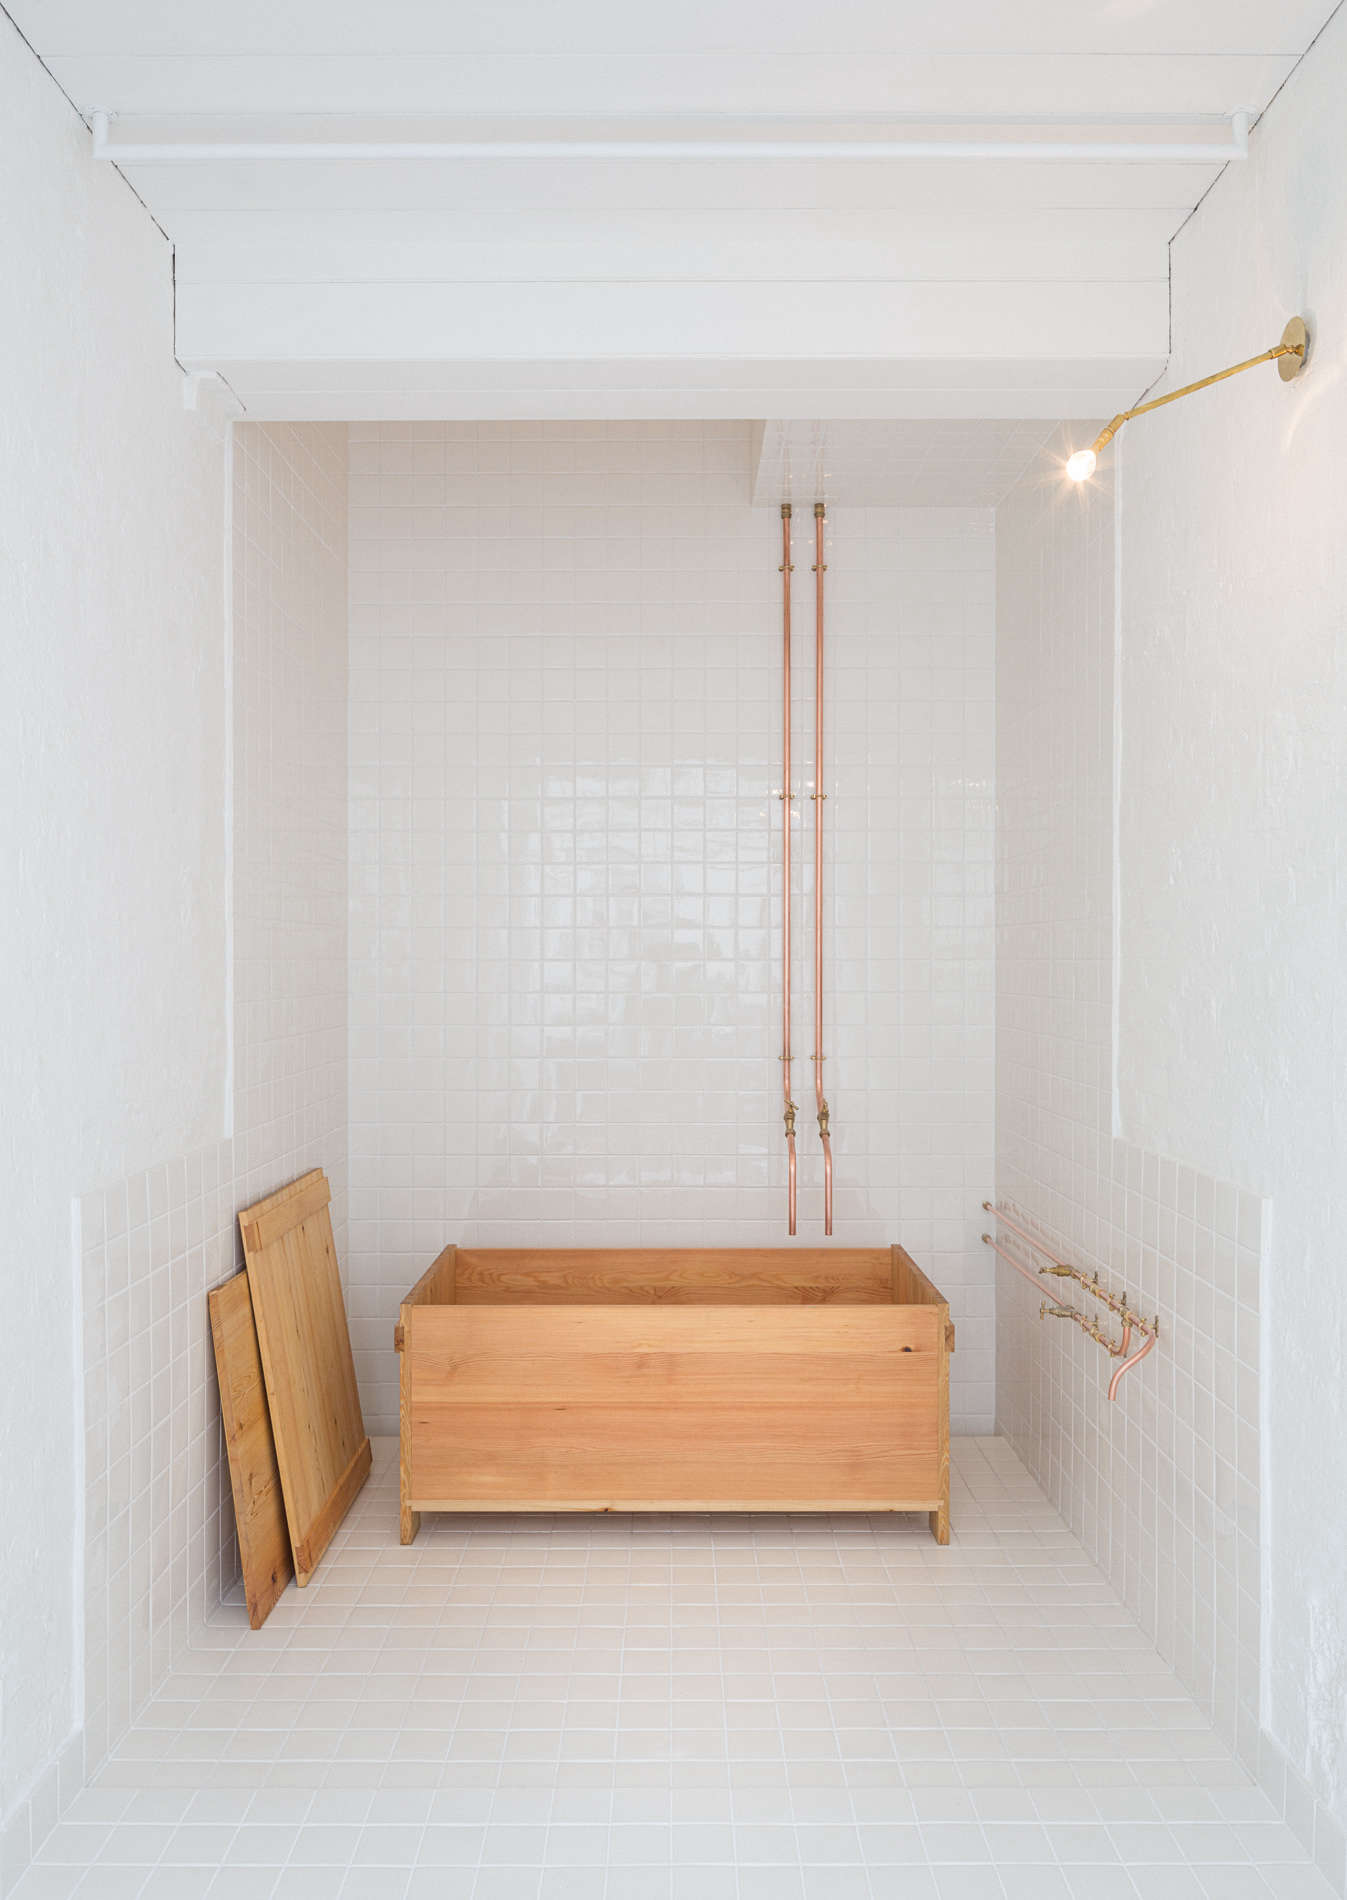 The Home Spa Reimagined, from a Dutch-Finnish Designer